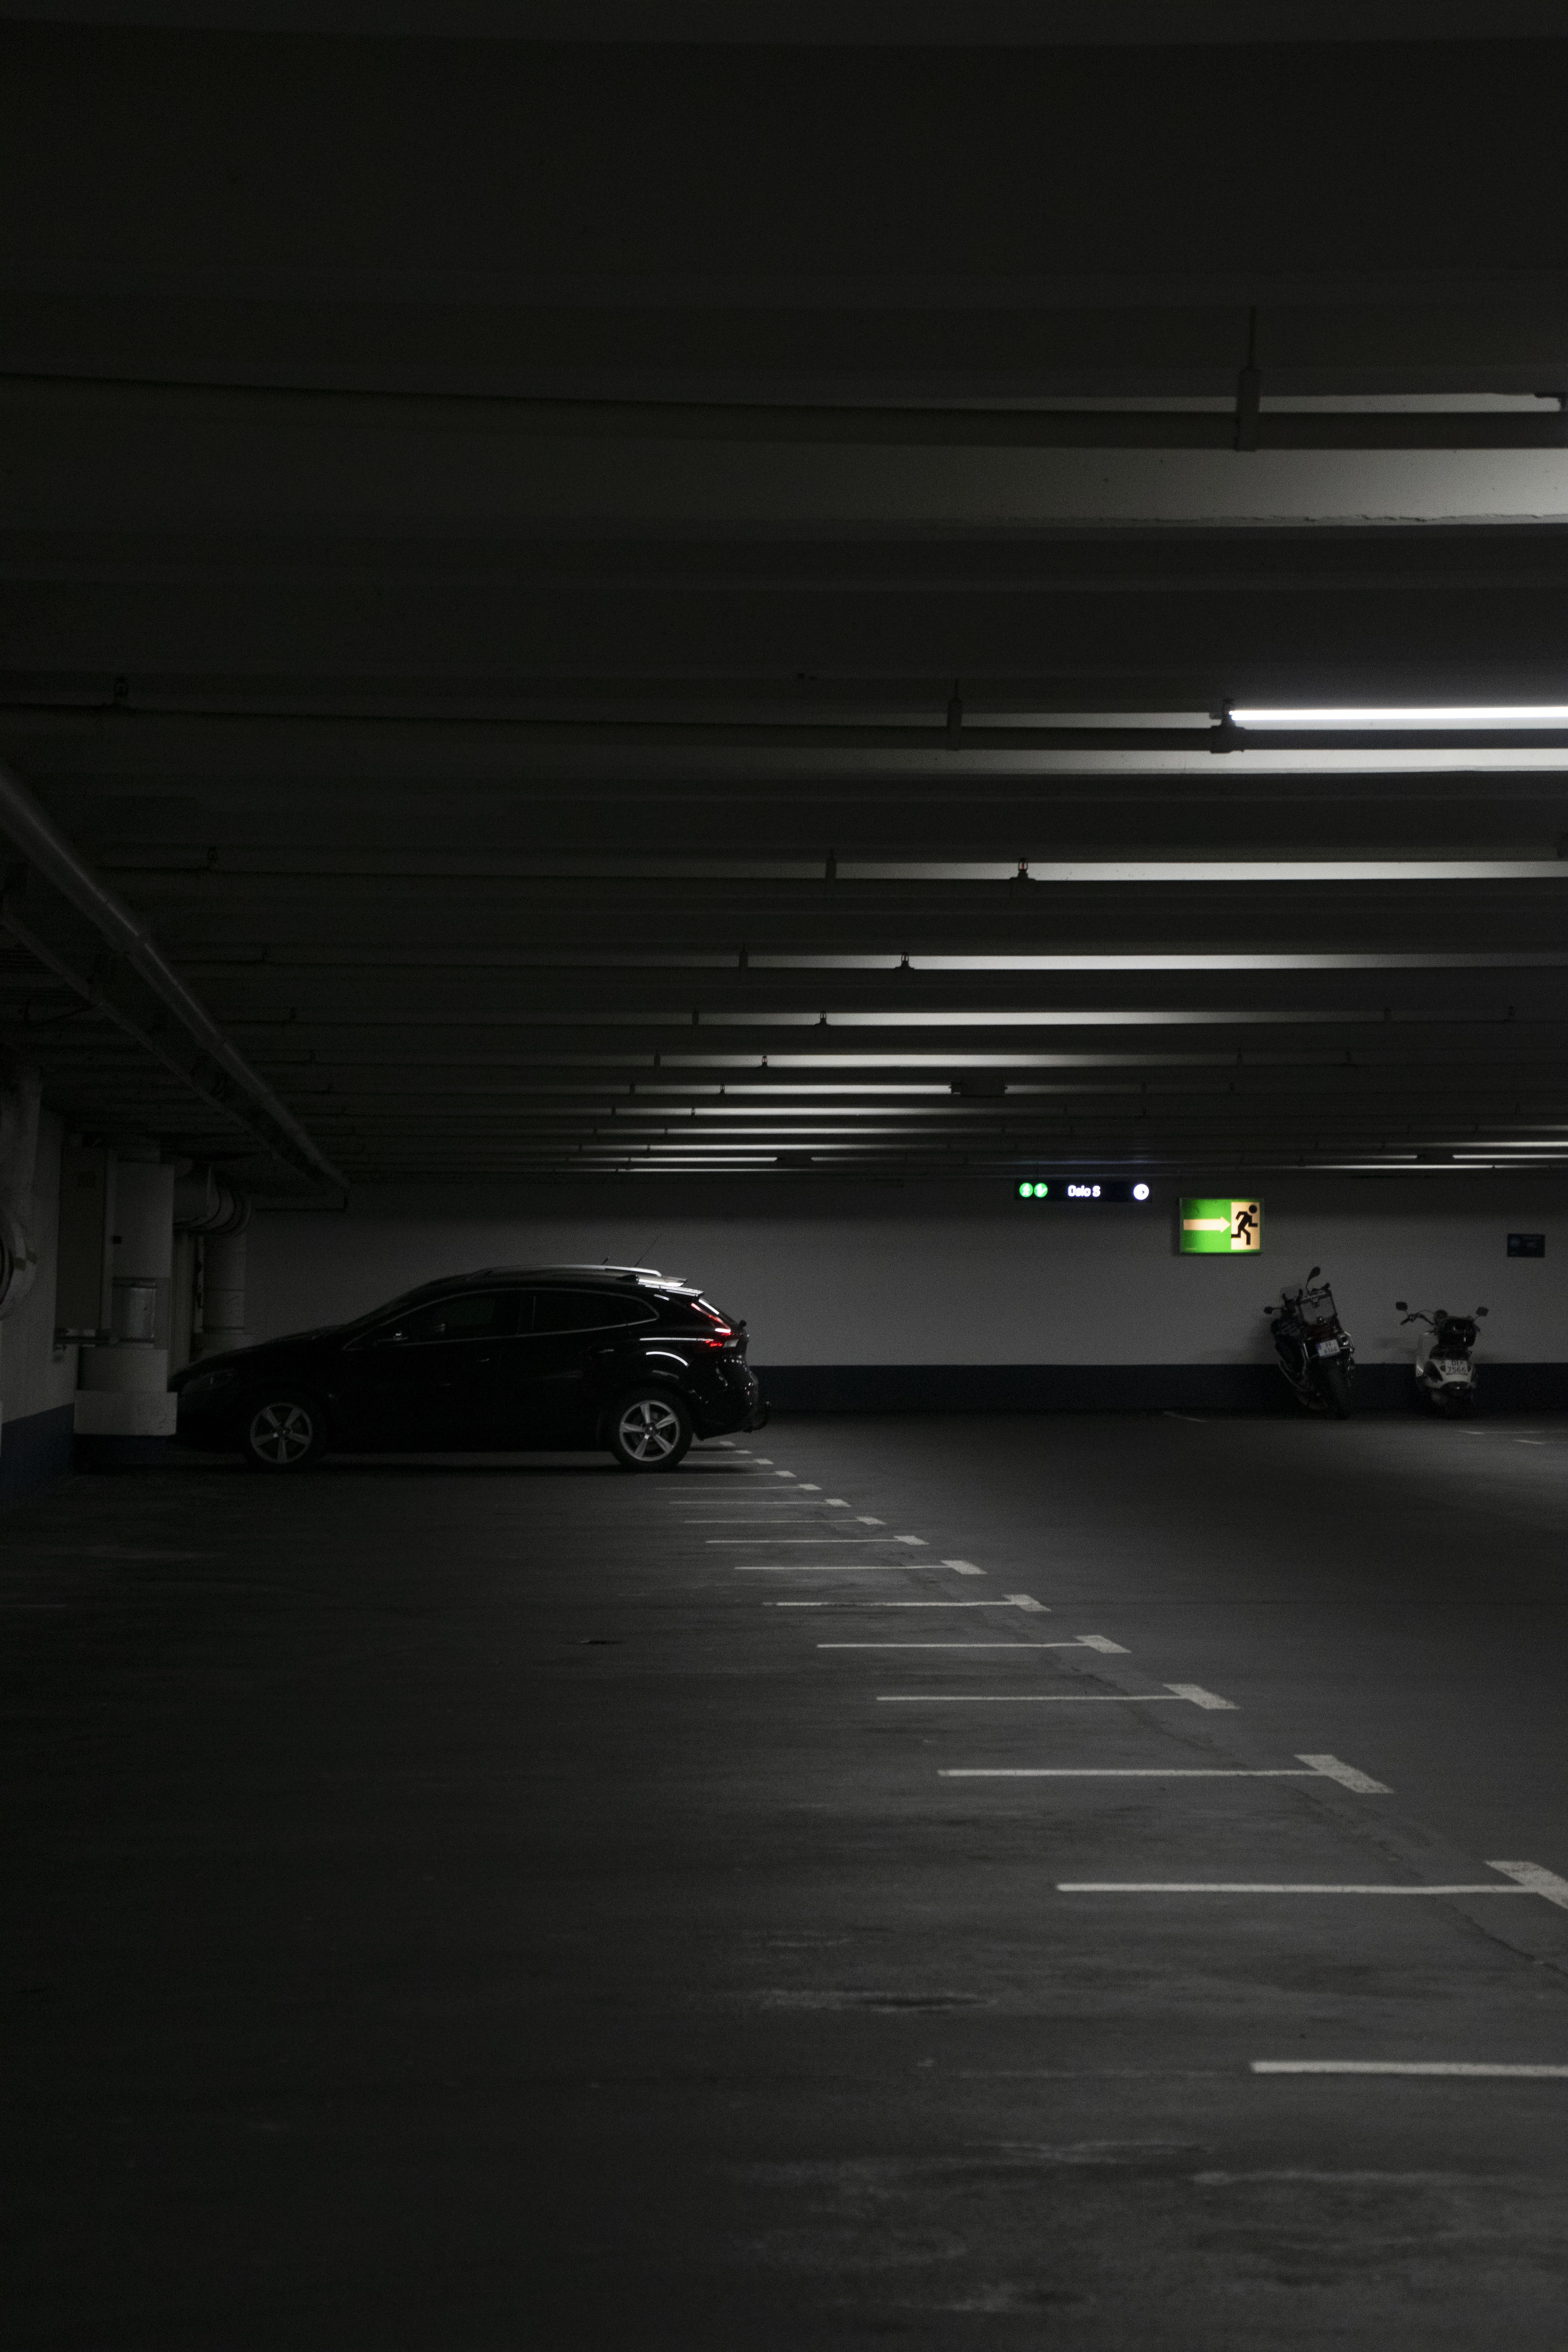 500 Parking Pictures Hd Download Free Images On Unsplash